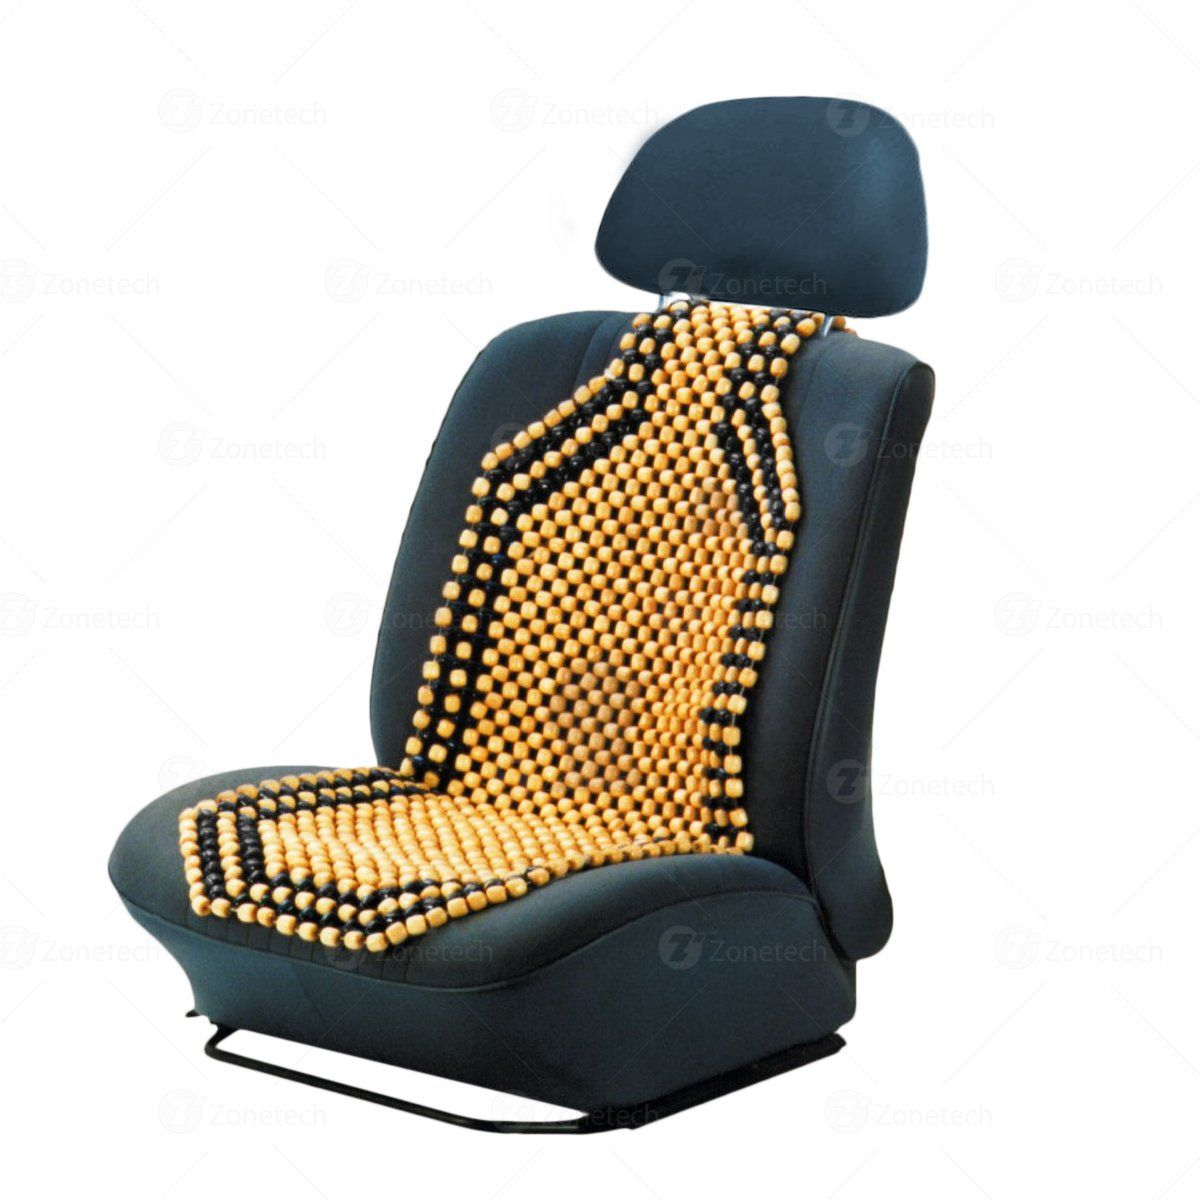 Pin on Massage Chair